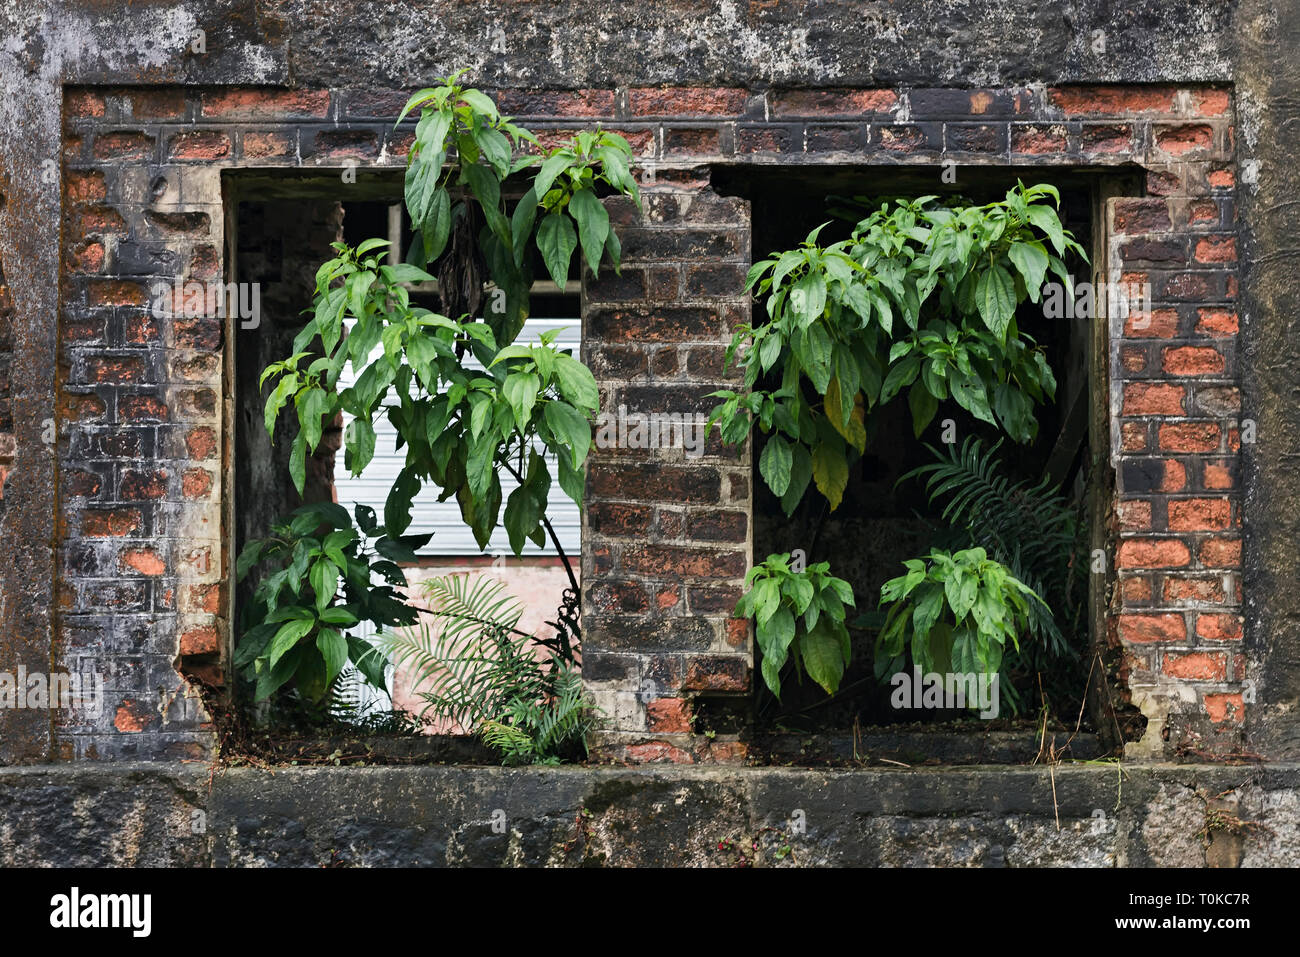 Plants growing inside an abandoned house - Stock Image